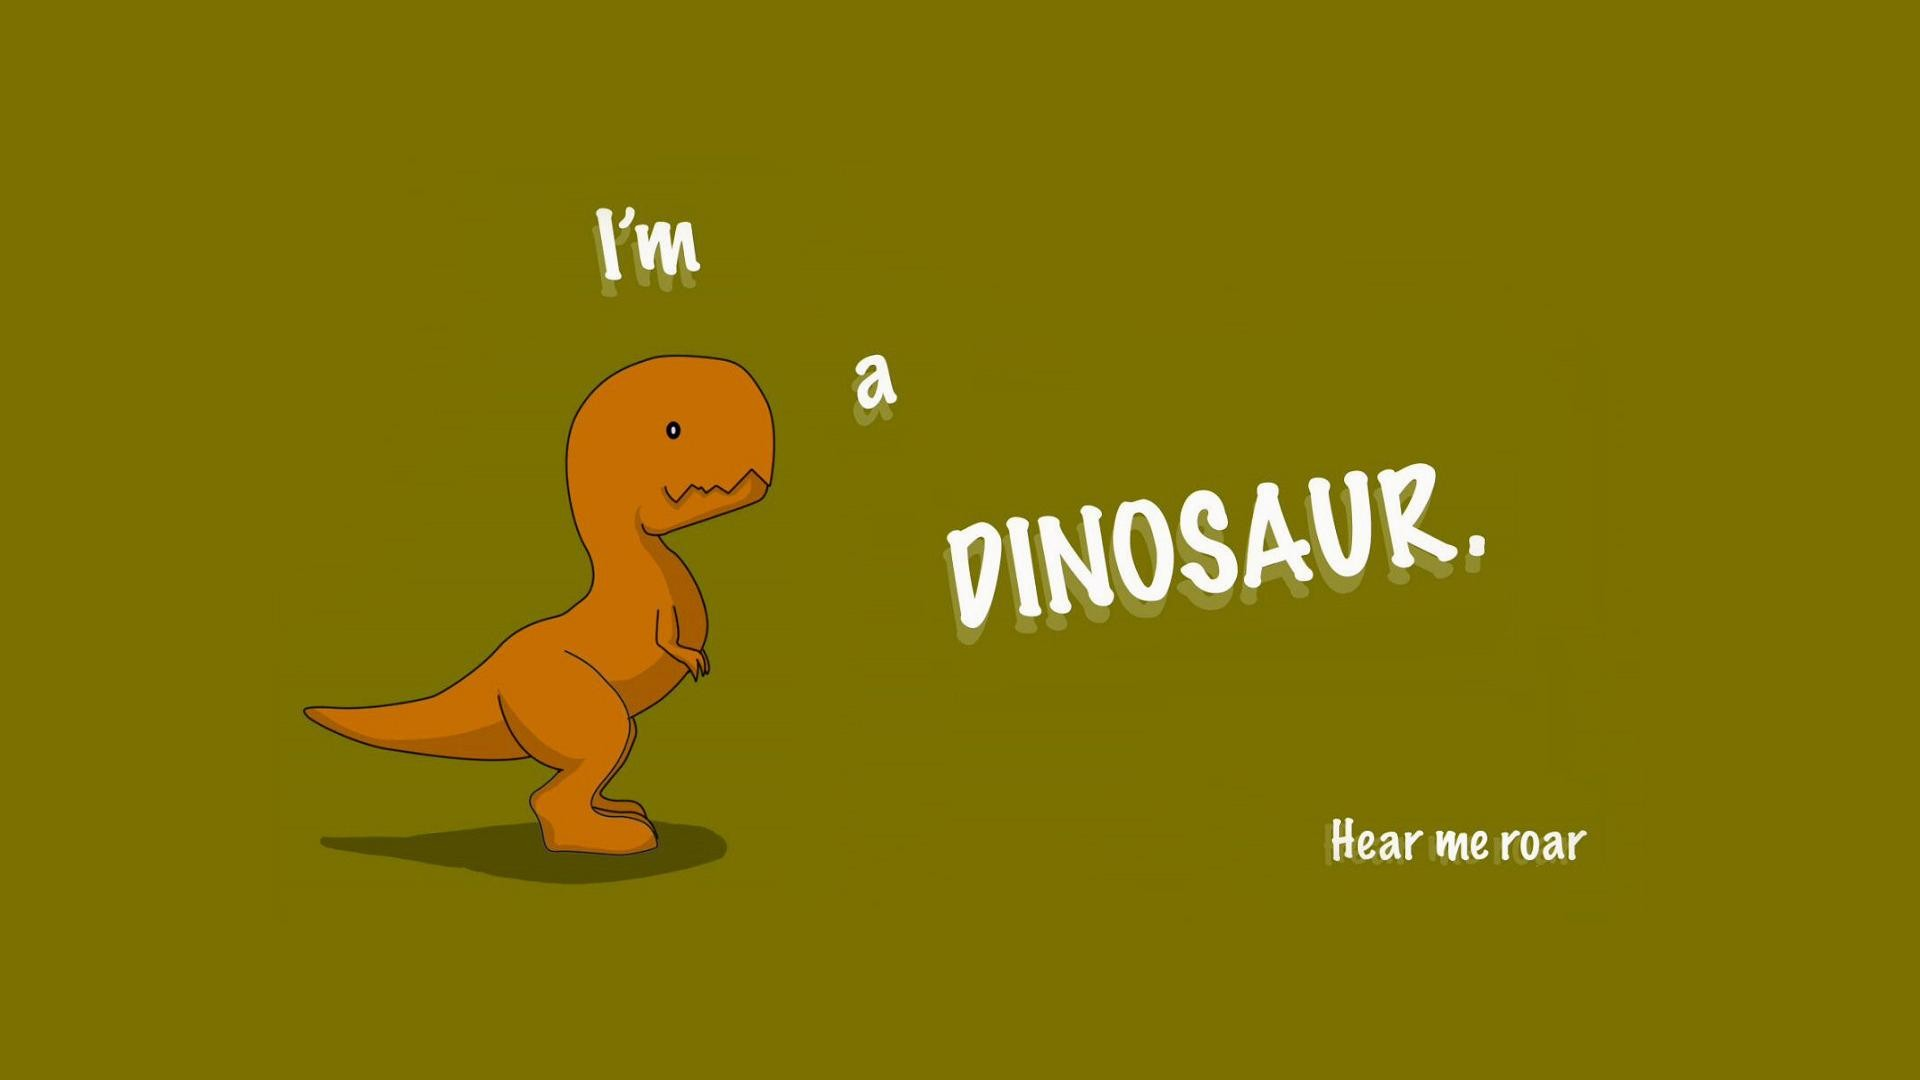 Funny-Little-Dinosaur-For-Wallpaper-Images-HD-Free